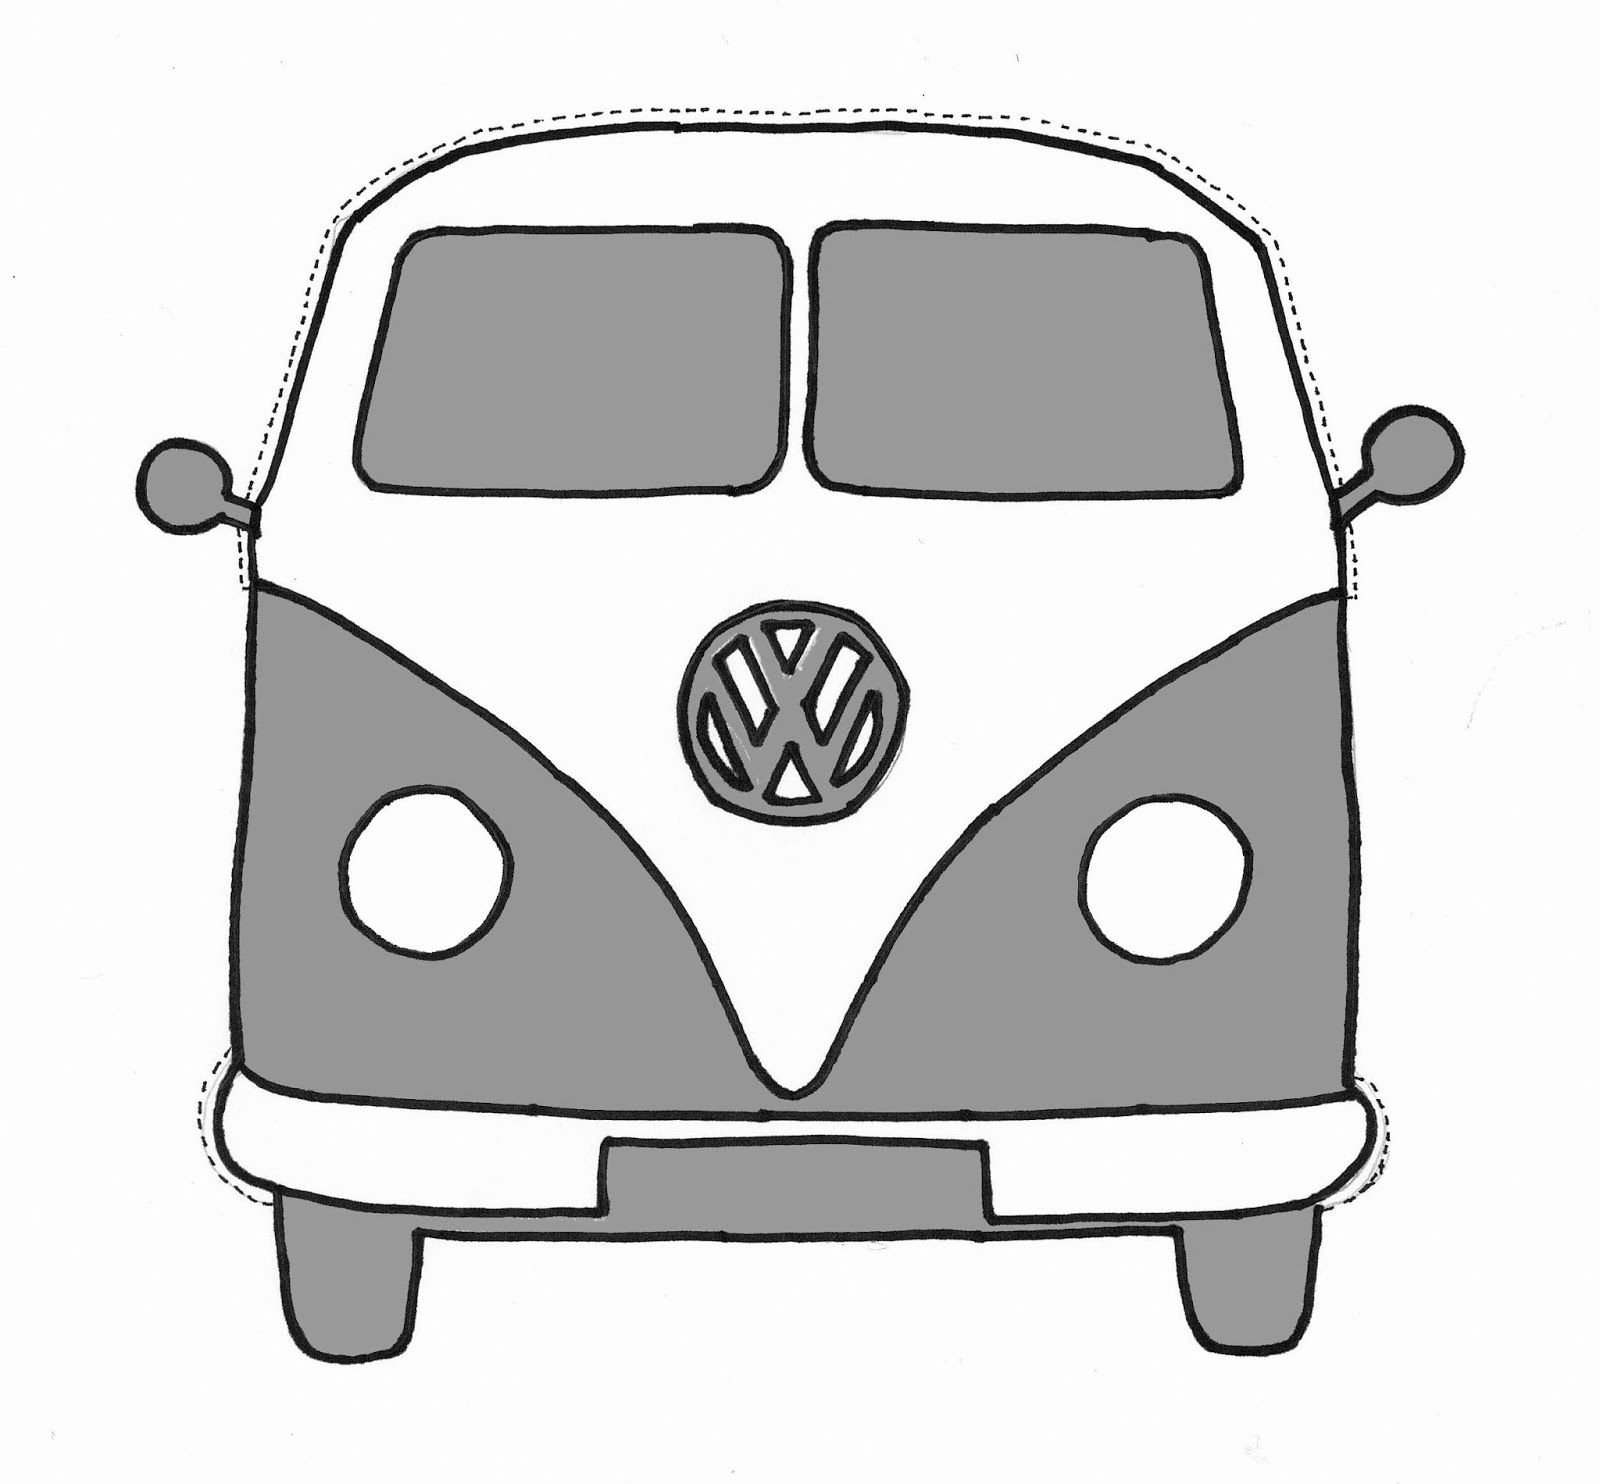 1600x1484 Vw Bus Silhouette Vw Bus Silhoue. 1111 Branding